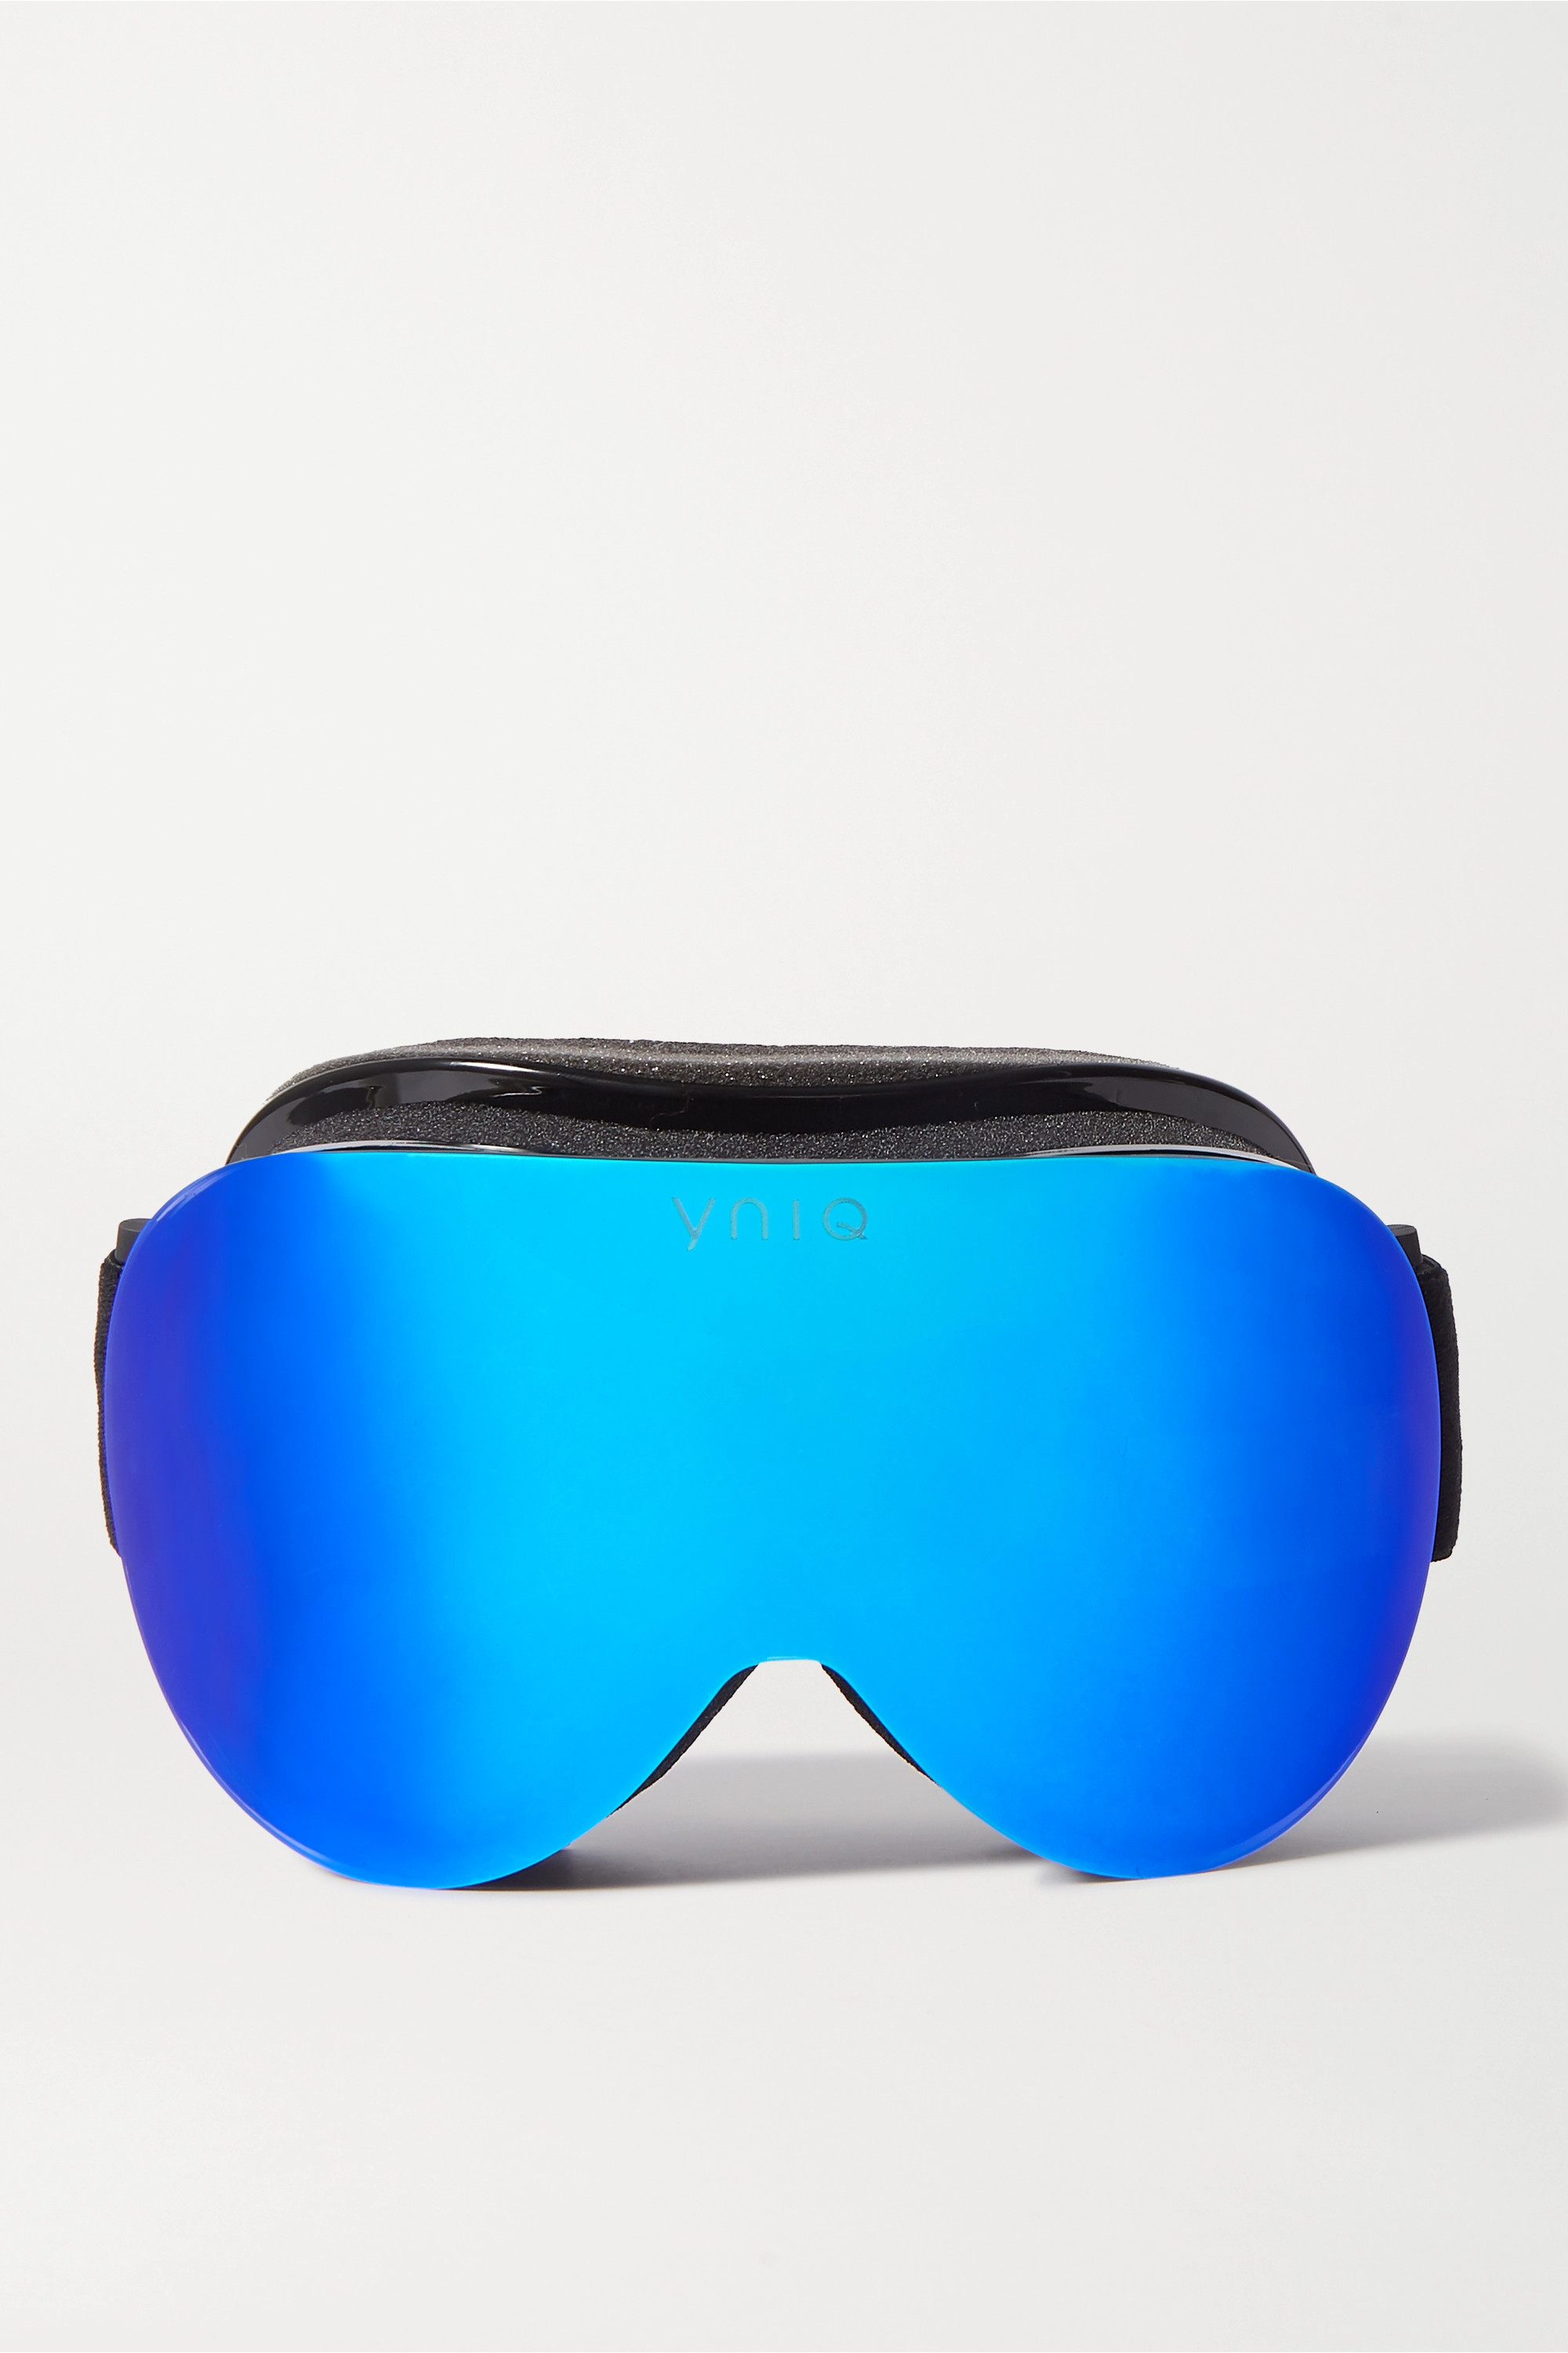 YNIQ Model Two mirrored ski goggles